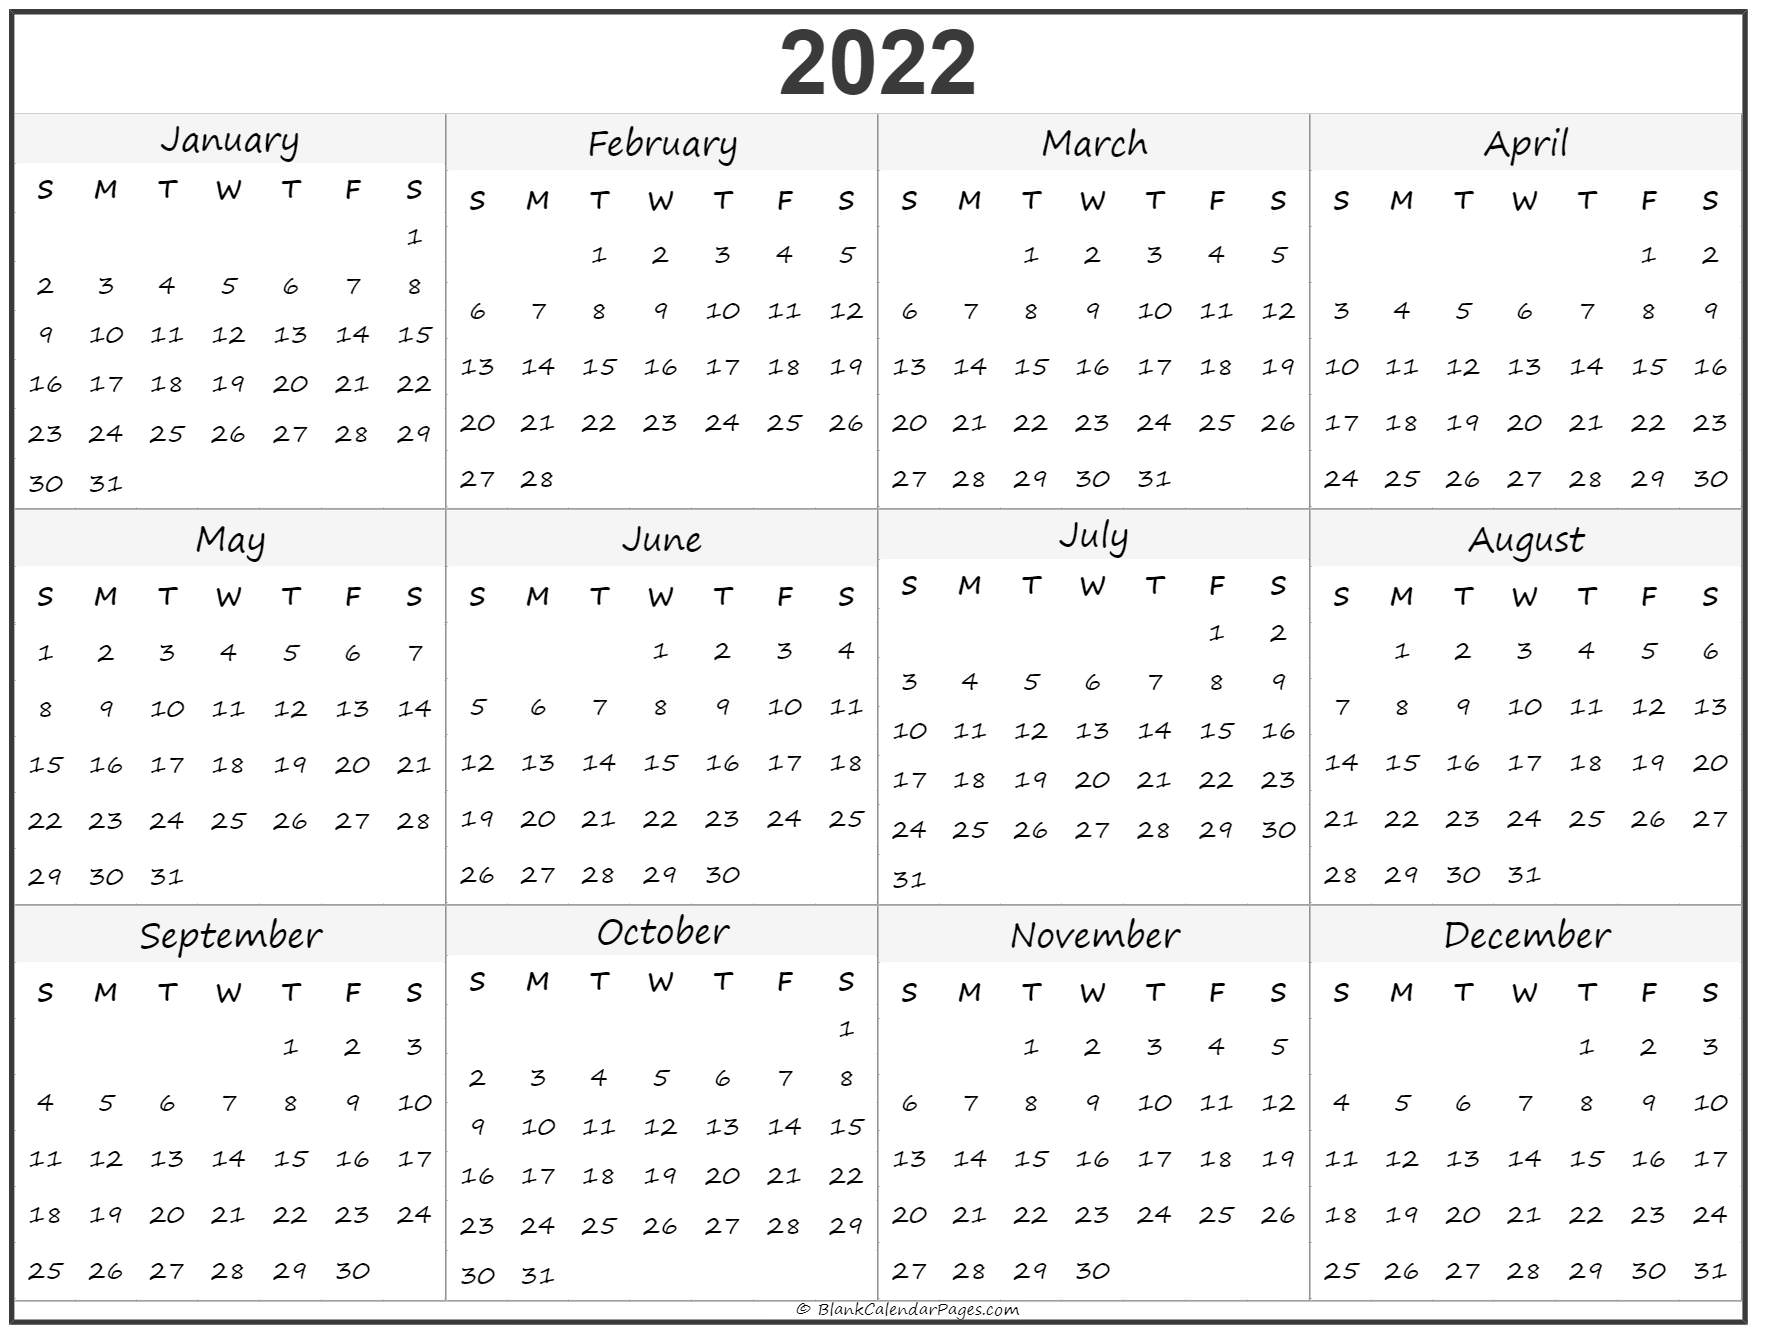 photo relating to 2022 Calendar Printable titled 2022 calendar year calendar every year printable